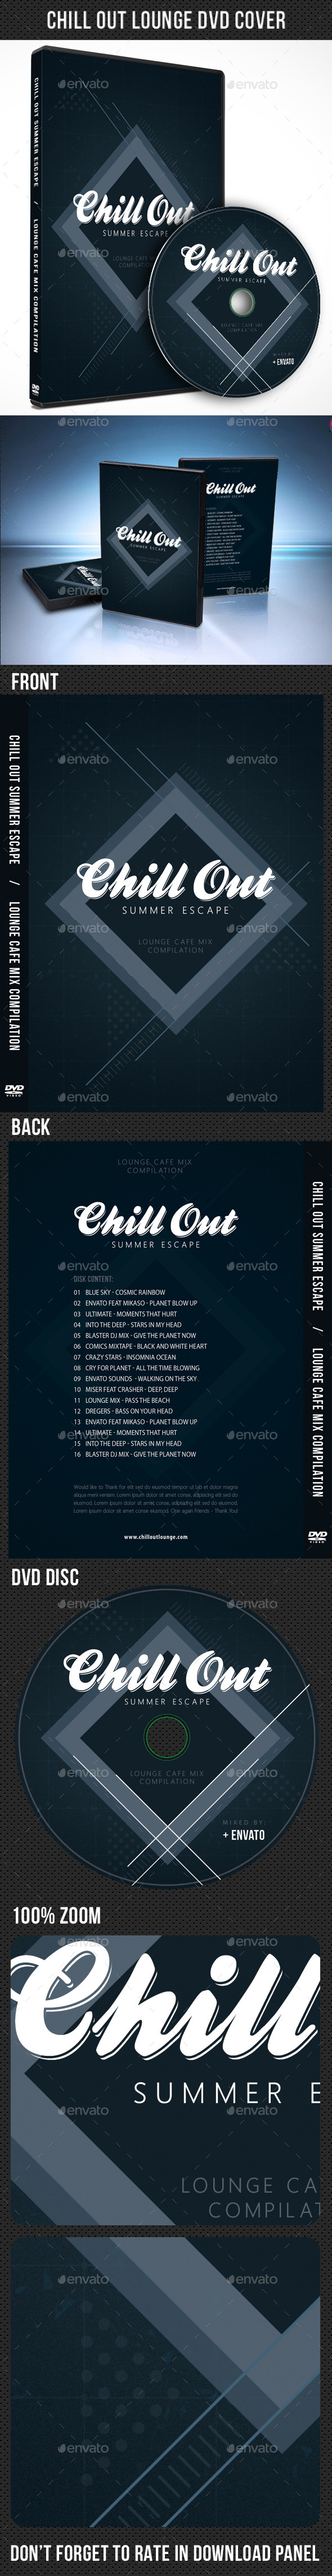 Chill Out Lounge DVD Cover Template - CD & DVD Artwork Print Templates